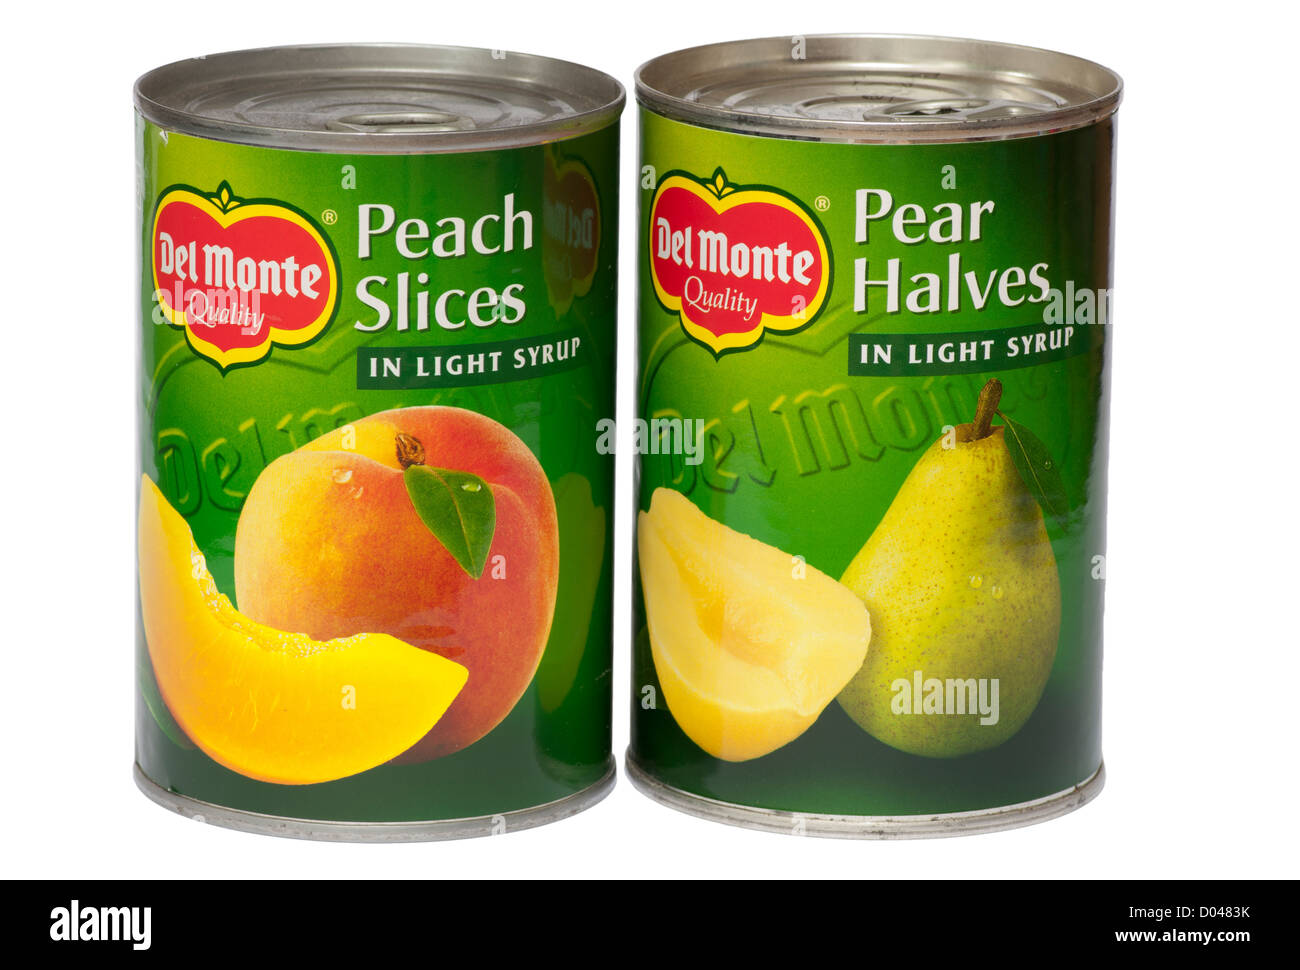 Tins Of Del Monte Tinned Fruit - Stock Image